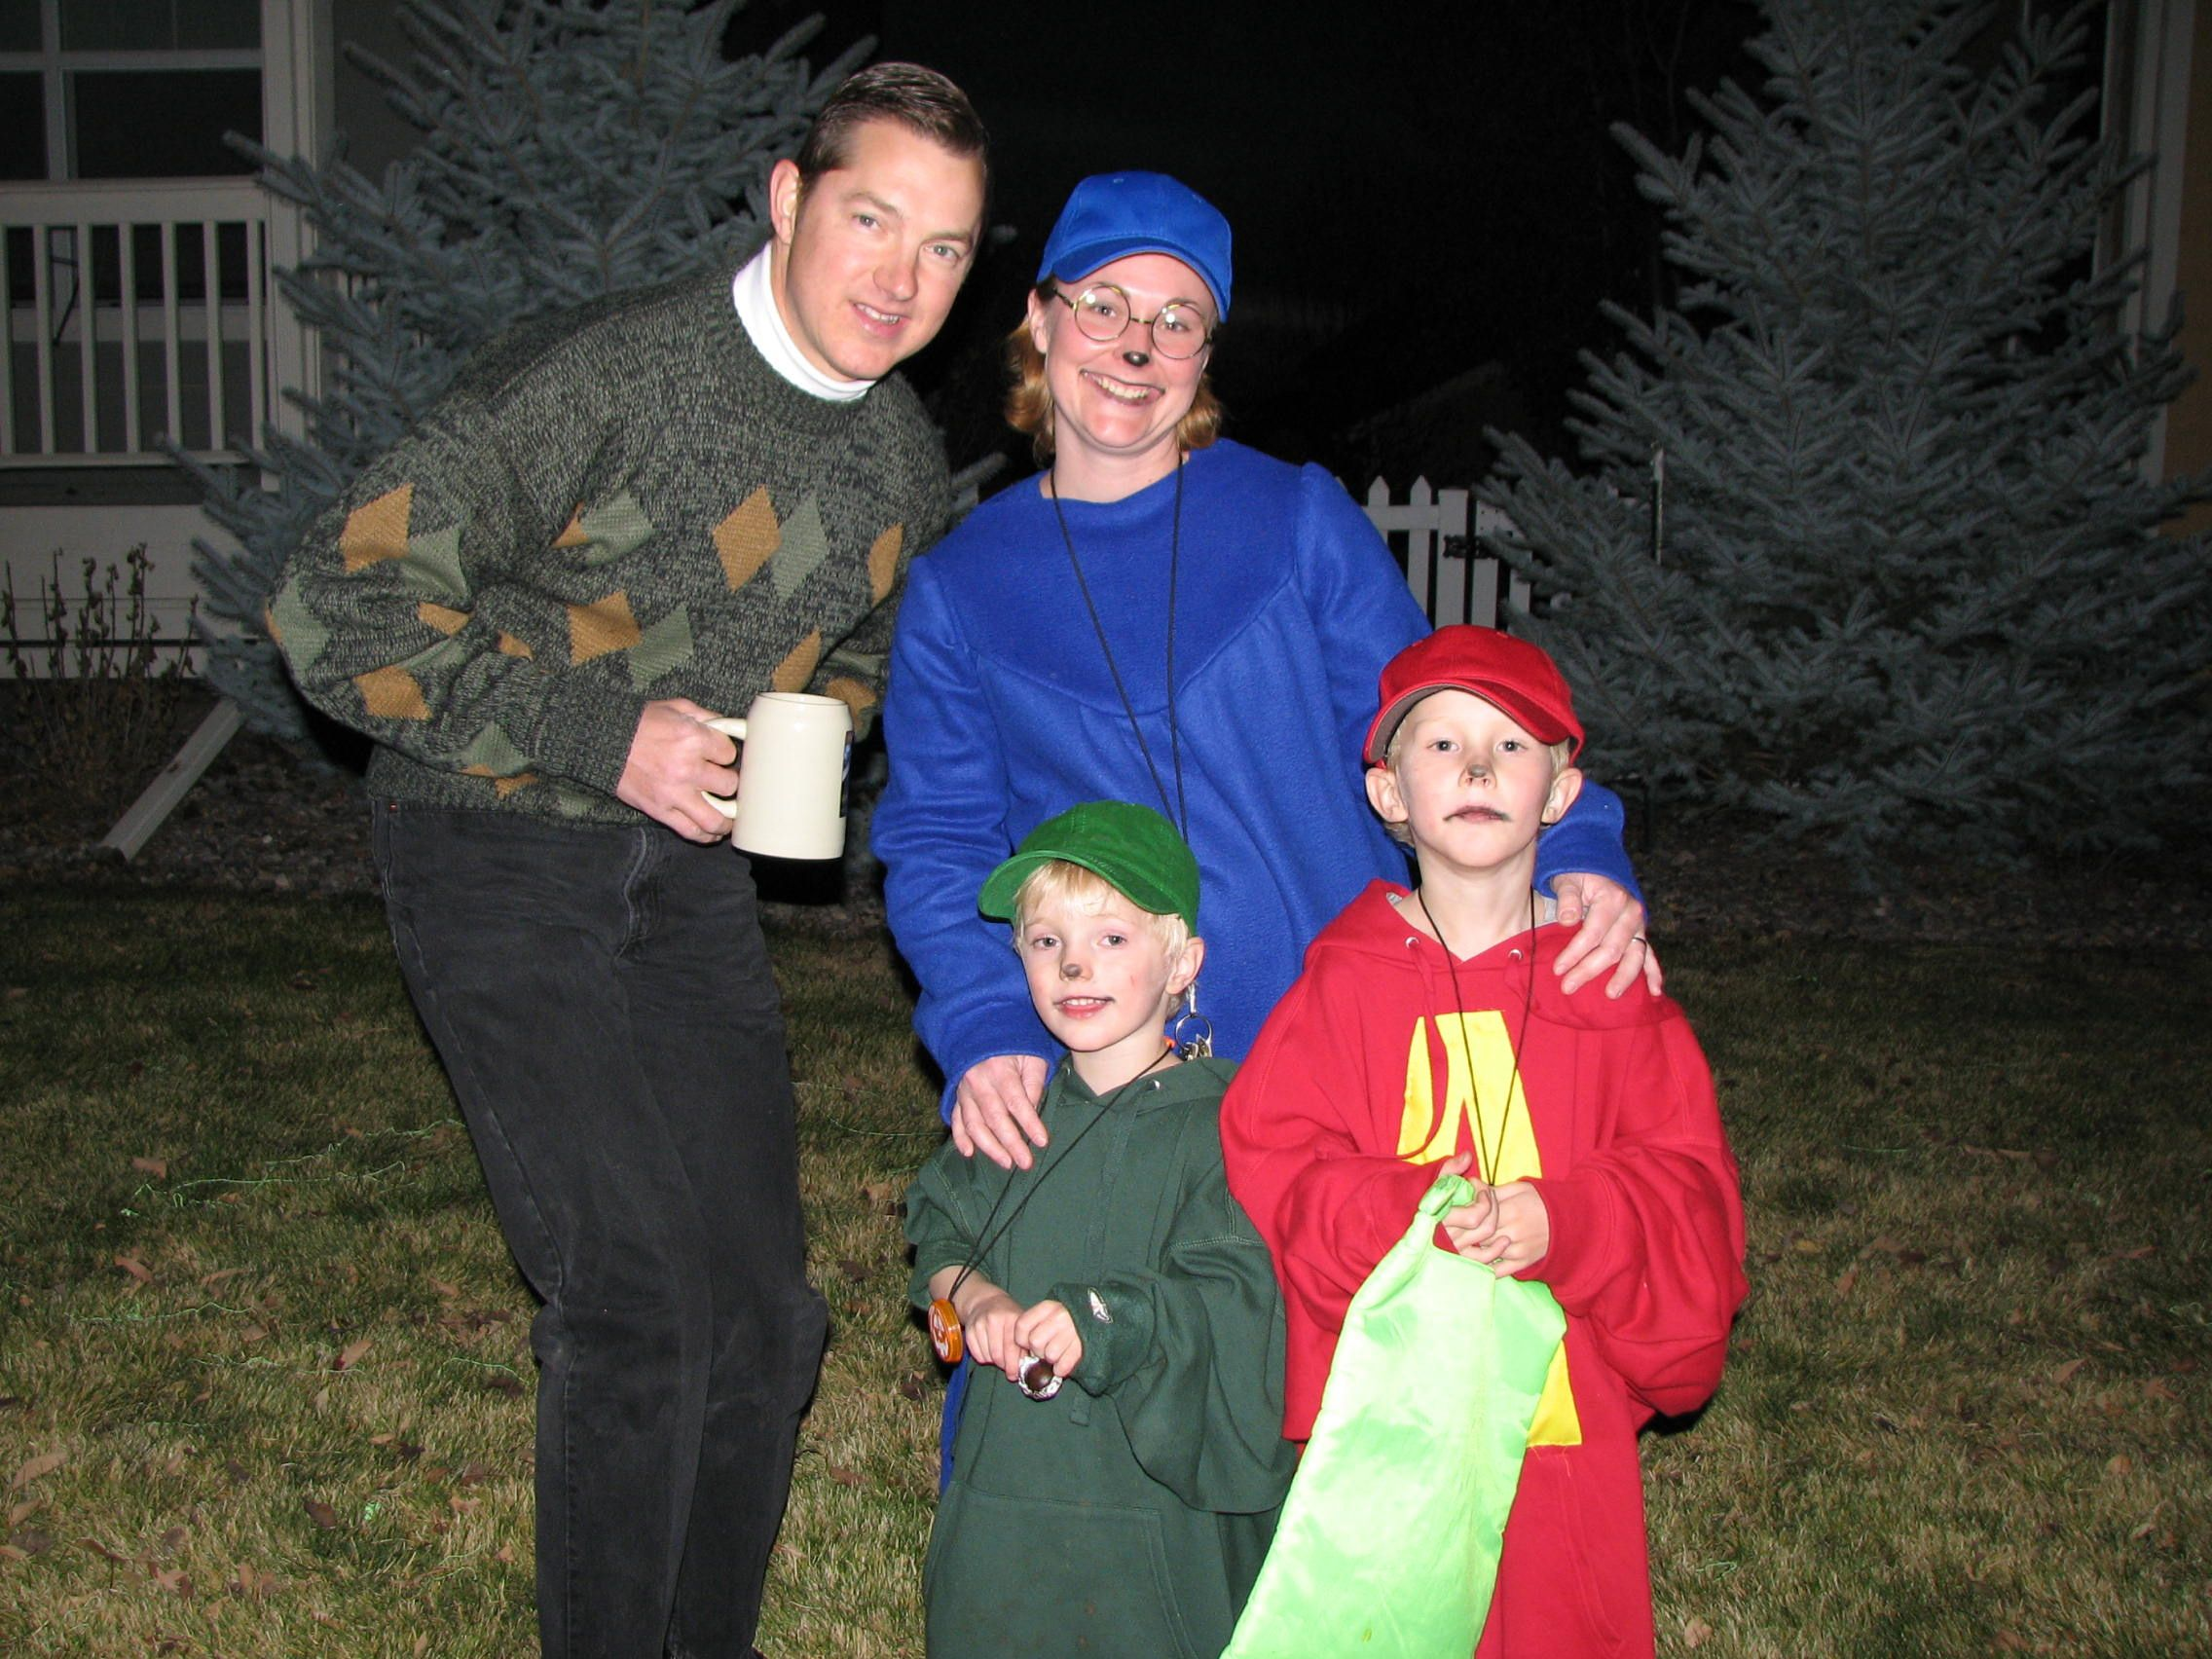 Halloween 2008 Alvin The Chipmunks And My Husband Was Dave Seville This Year Was Sup Boys Halloween Costumes Diy Boy Halloween Costumes Family Halloween